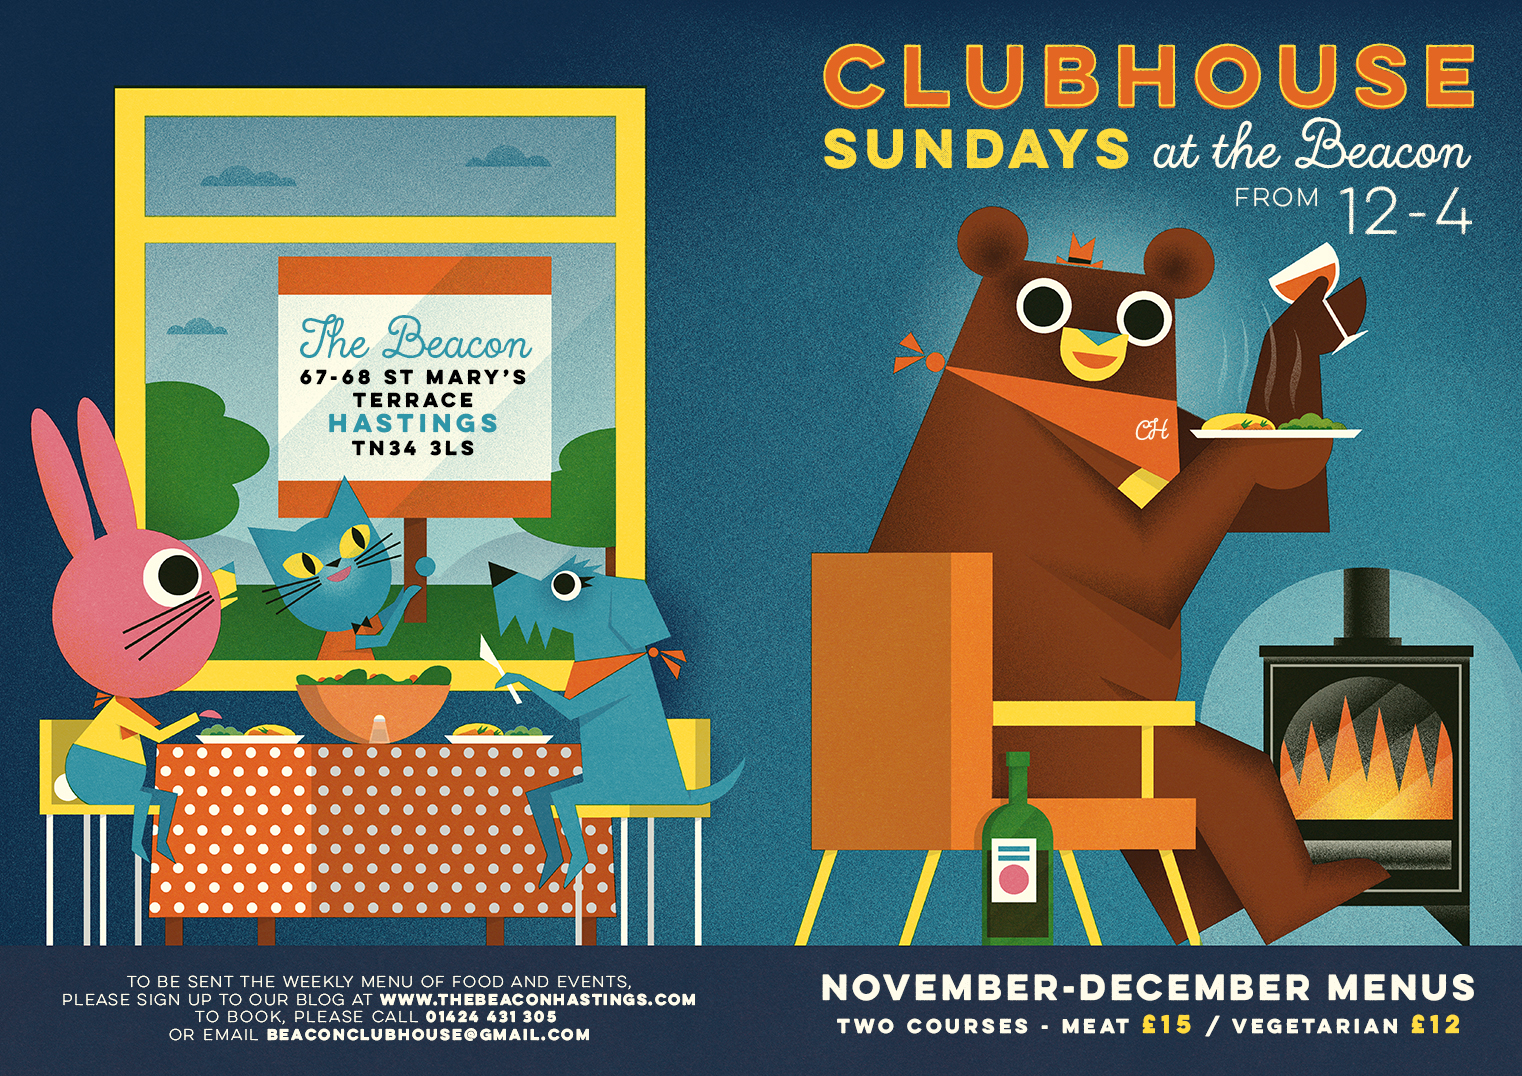 Clubhouse Sundays